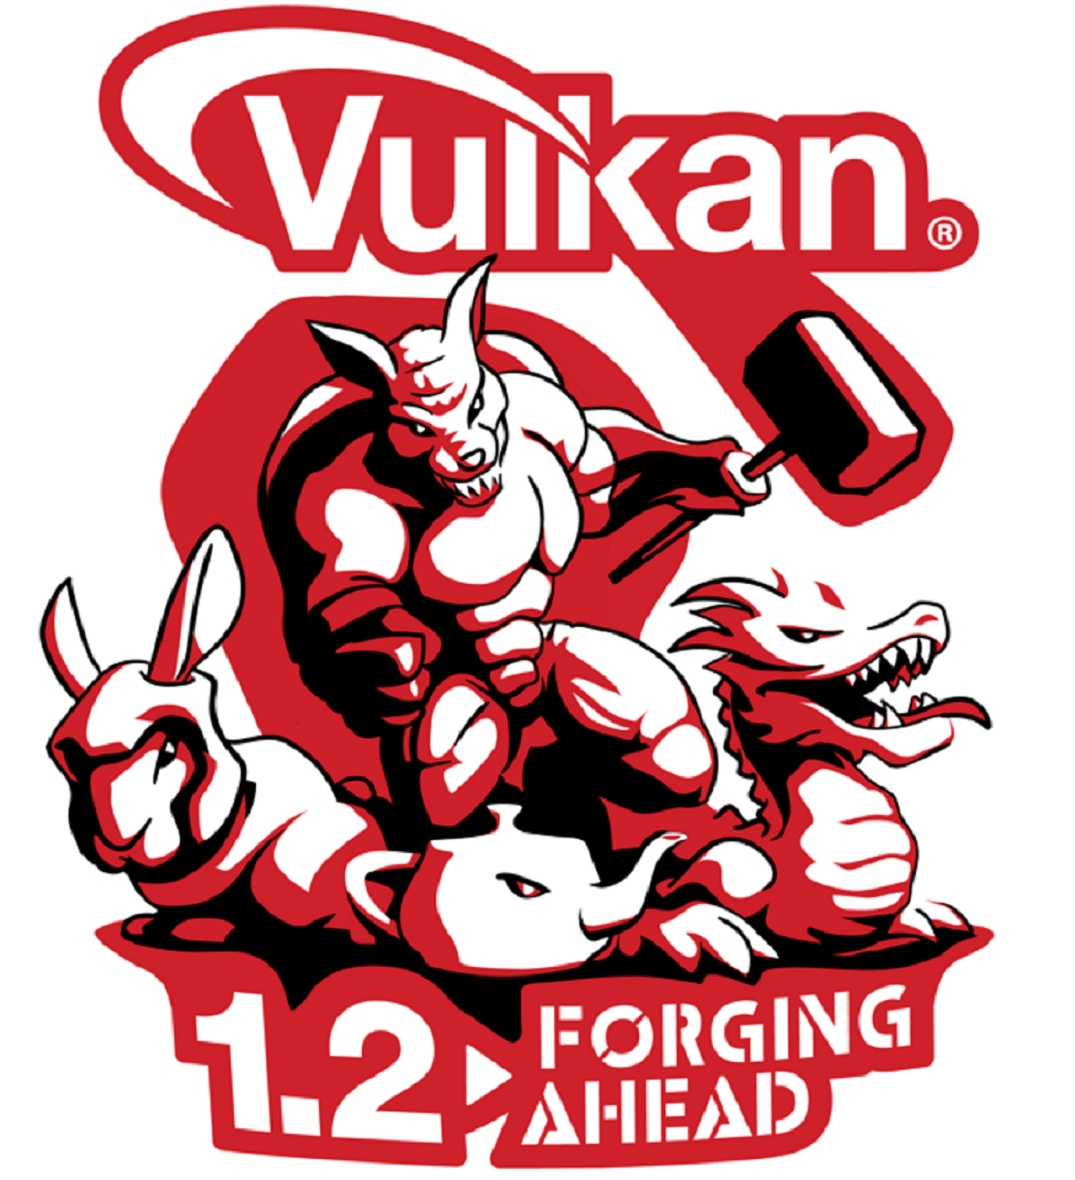 Update: The Khronos Group Launches Vulkan 1.2 Specification Today, With 23 Proven Extensions Into The Main API